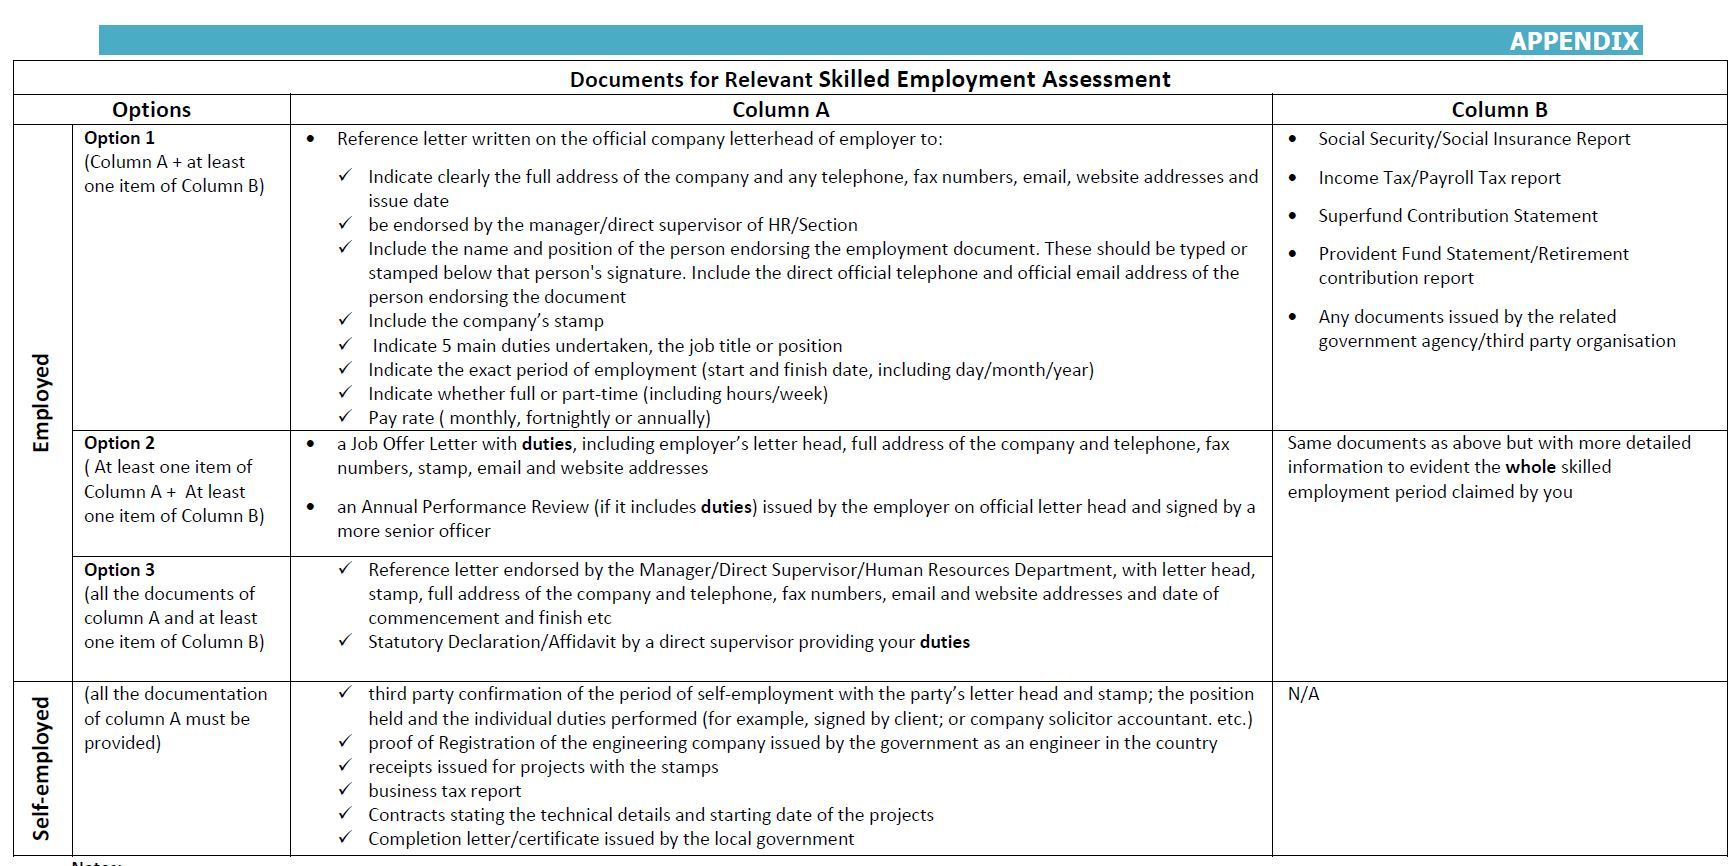 migration skills assessment booklet Please refer to the skilled migration booklet published by department of immigration and border protection and criteria attached to the migration skills assessment form [pdf 72kb] before i submit my paperwork i'd like an indication if my application will be successful.